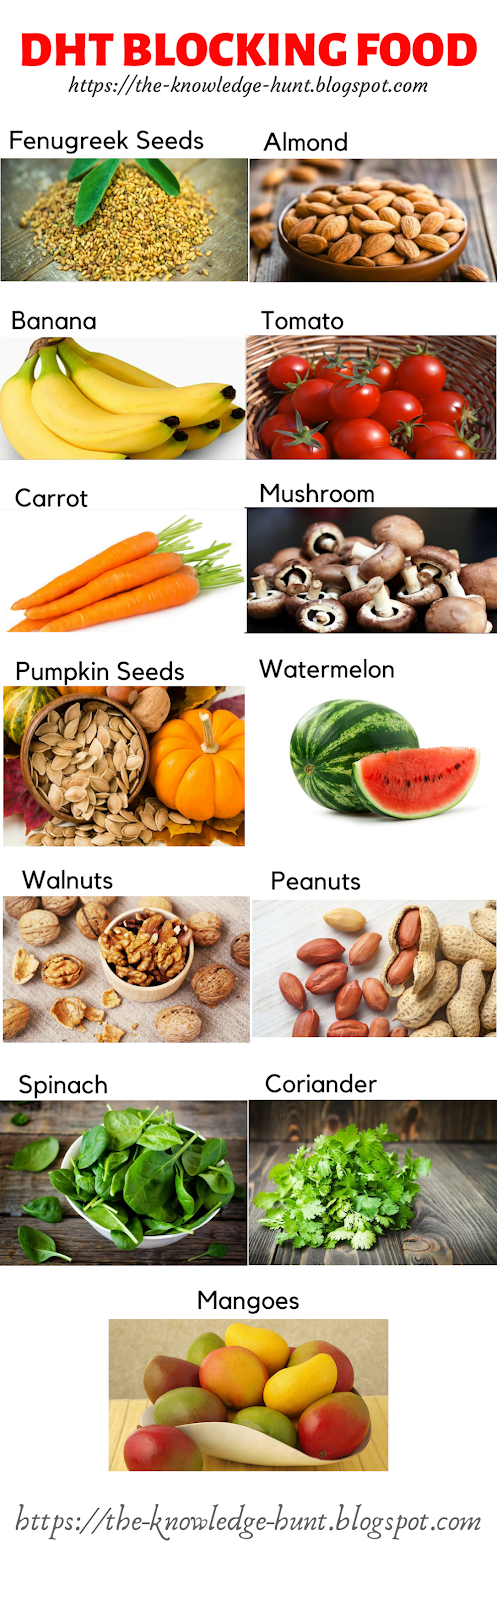 How to Fix Hair Fall for men & women (home remedies) DHT blocking foods are Fenugreek seeds, Almonds, Banana, Tomato, Carrots. Mushrooms, Pumpkin seeds, Watermelon, Walnuts, Peanuts, Spinach, Mangoes, Coriander